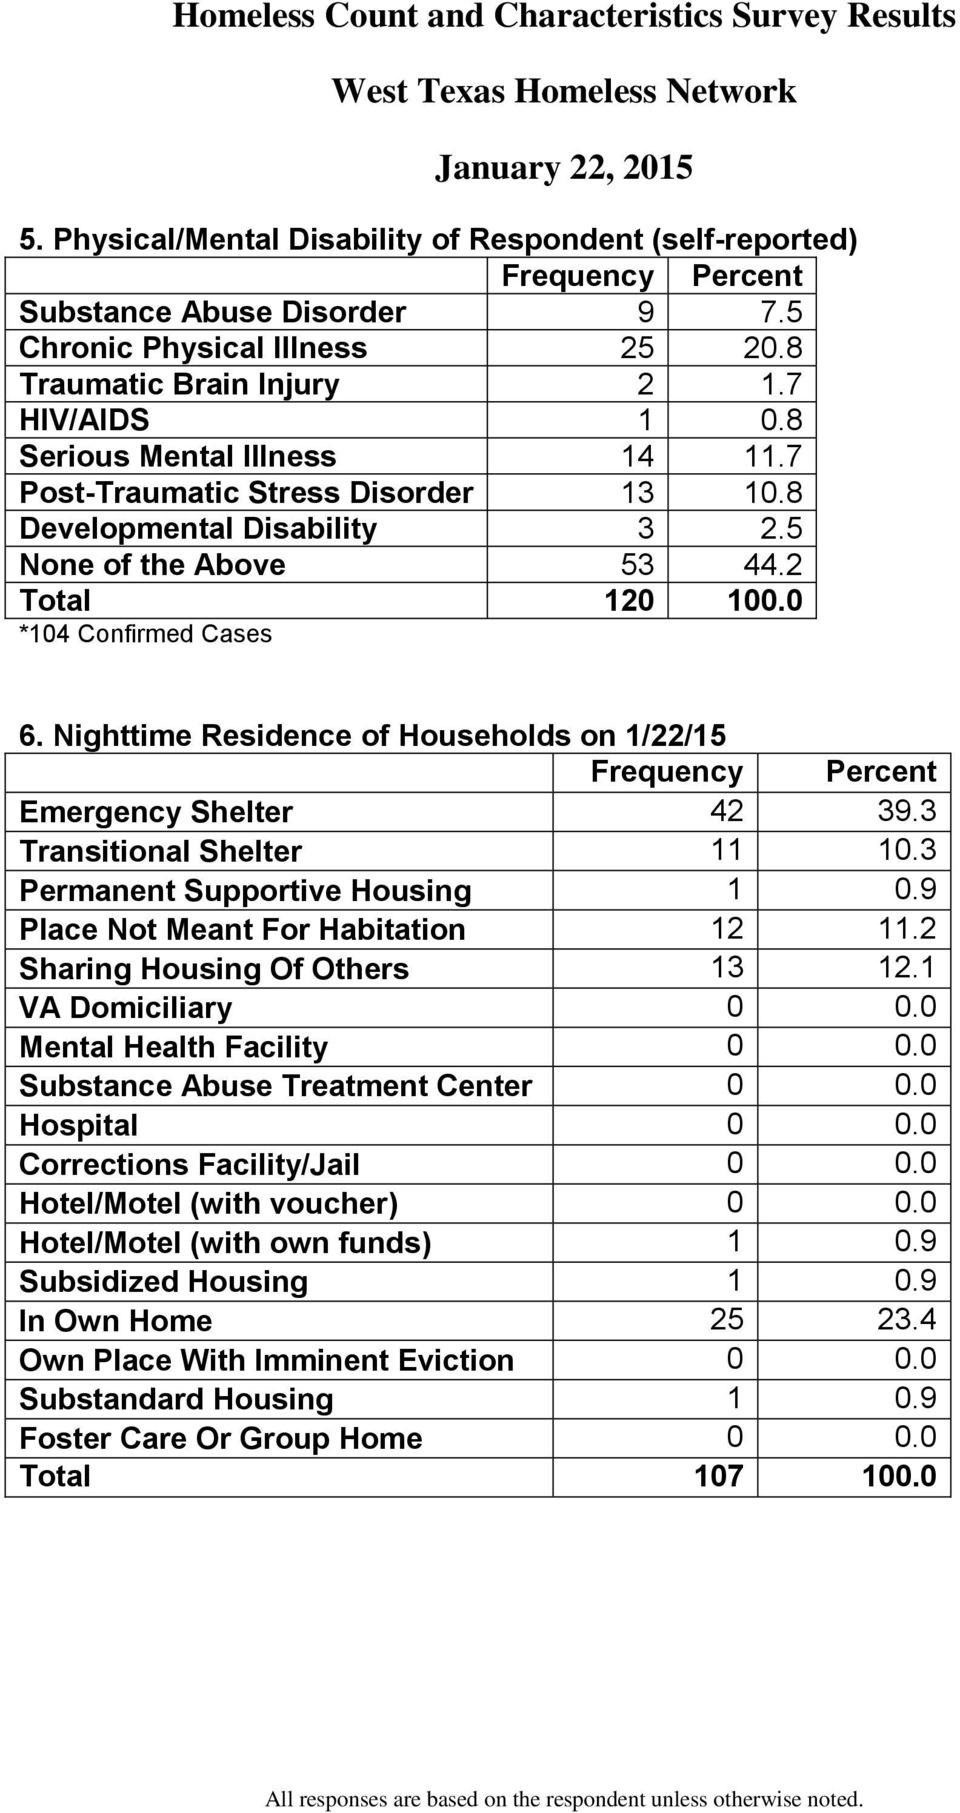 Nighttime Residence of Households on 1/22/15 Emergency Shelter 42 39.3 Transitional Shelter 11 10.3 Permanent Supportive Housing 1 0.9 Place Not Meant For Habitation 12 11.